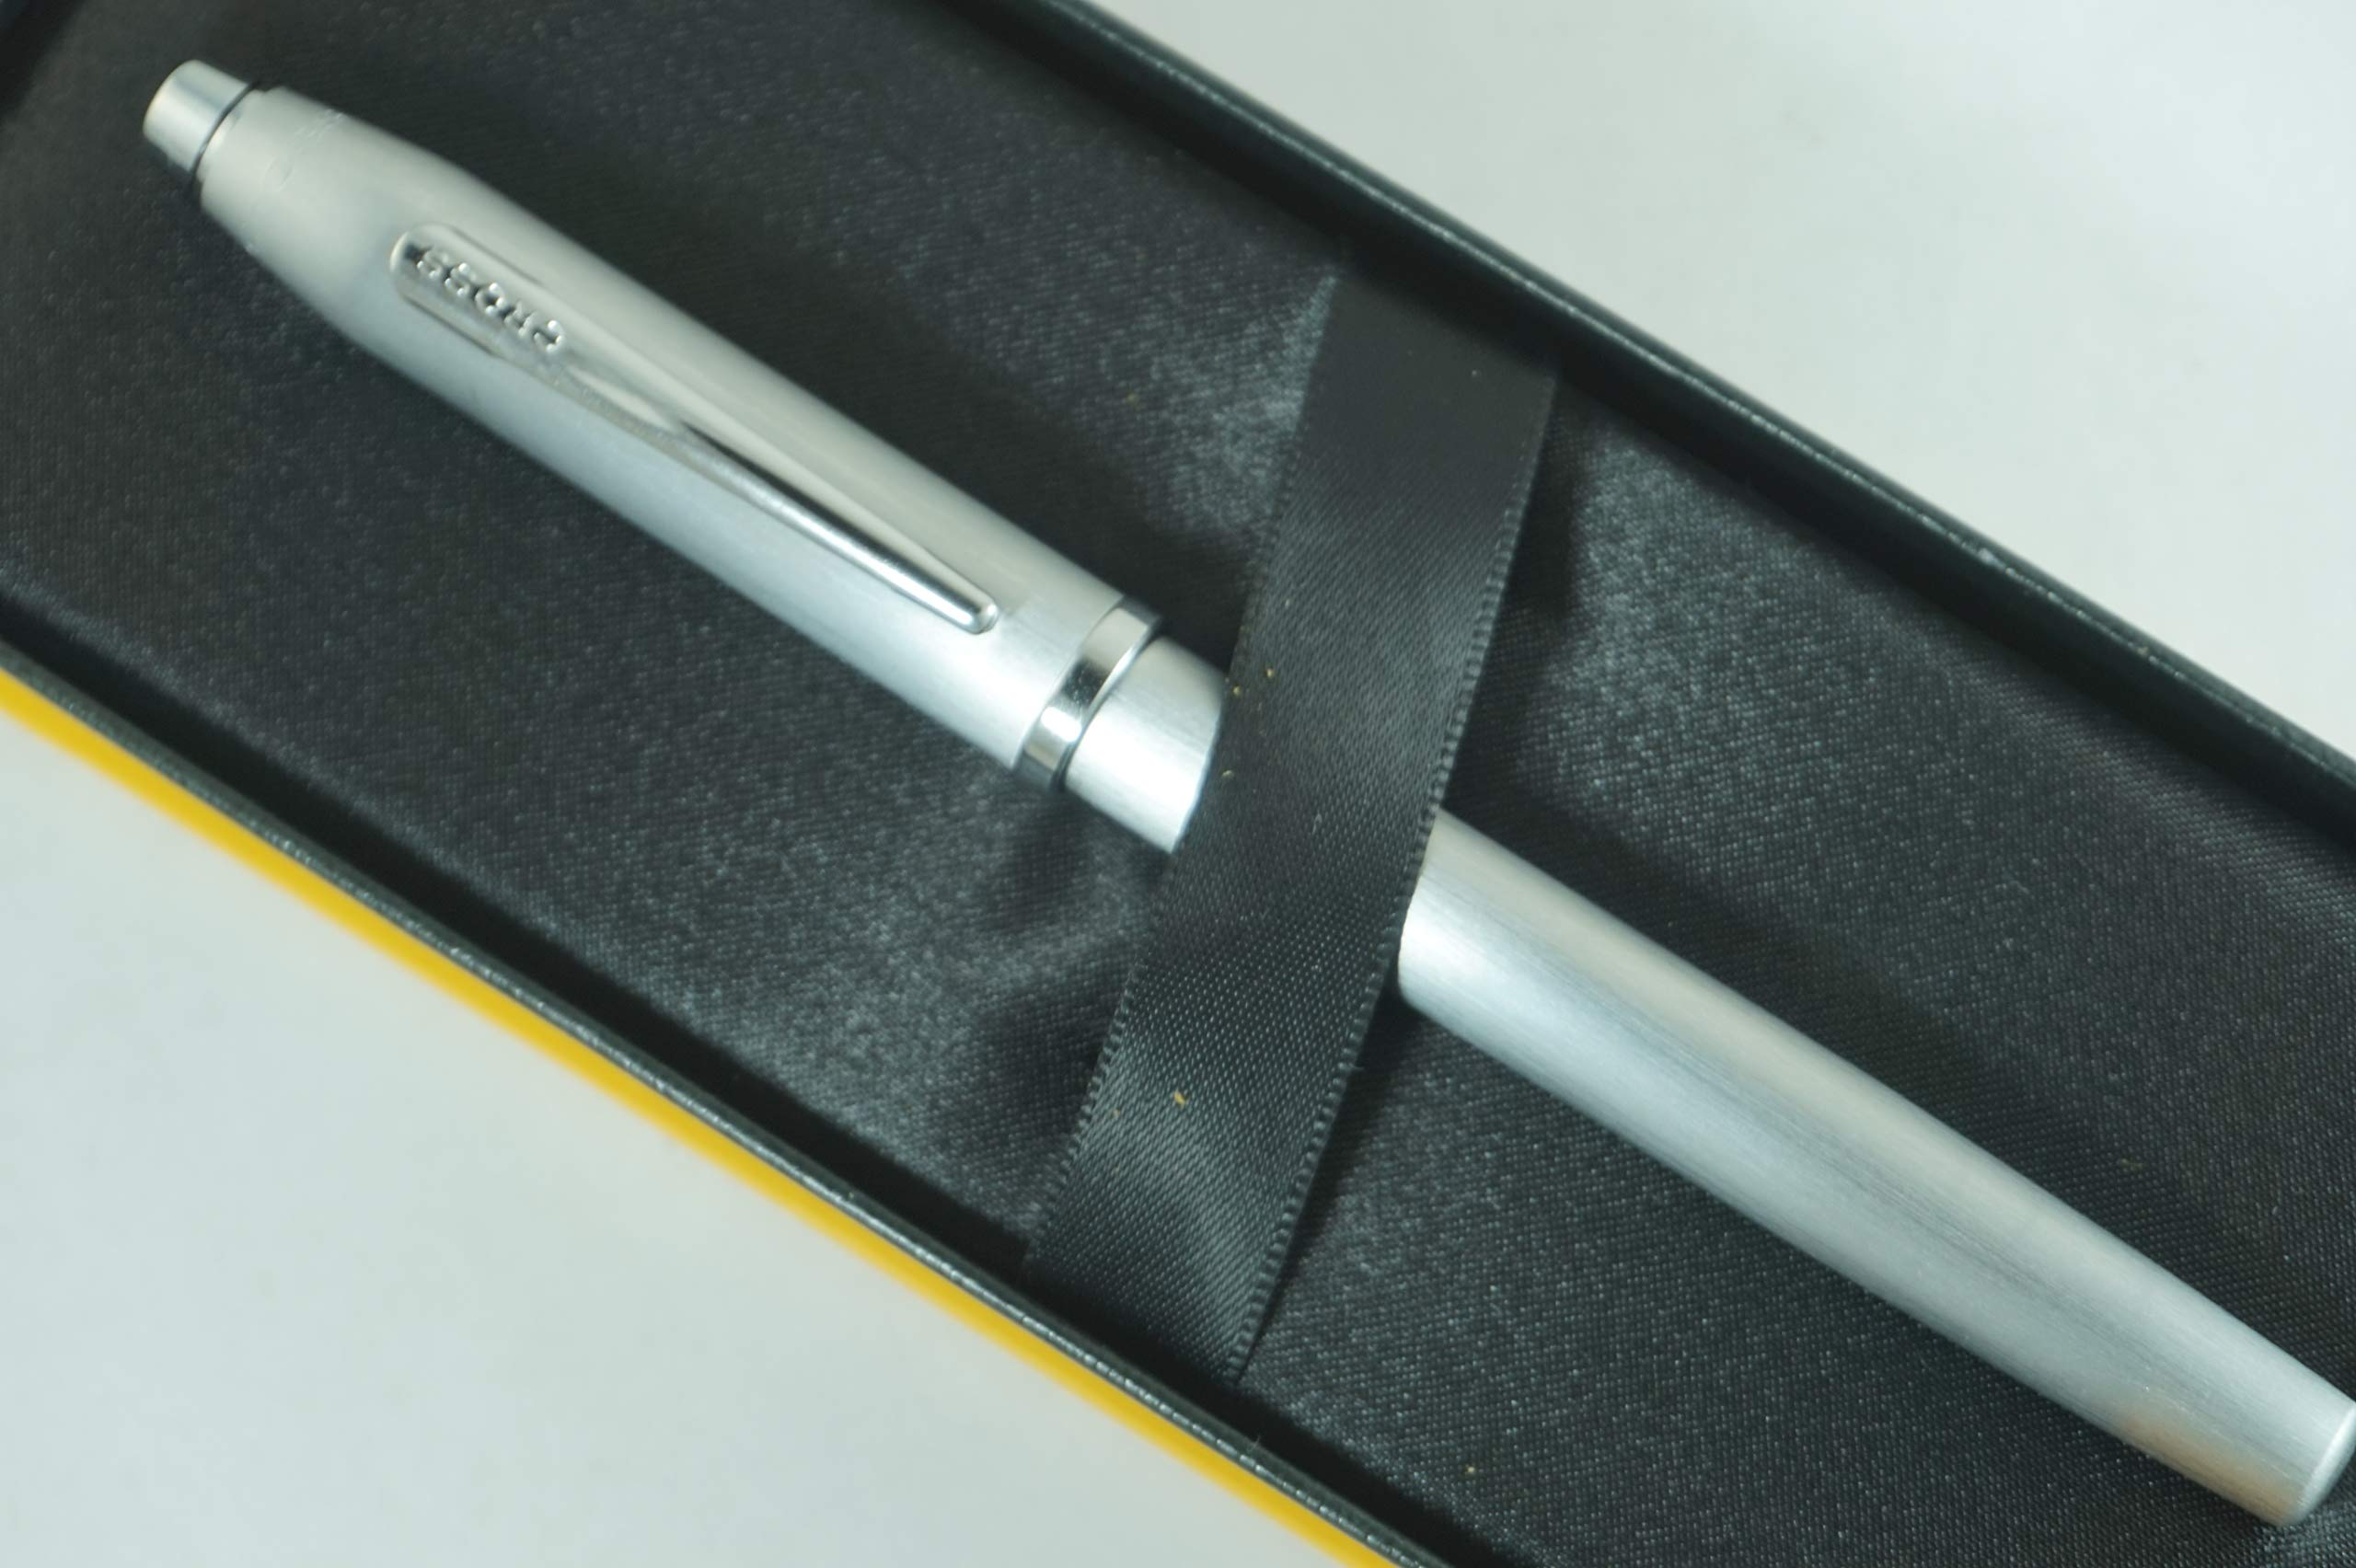 Cross Century II Limited Series, Brushed Barrel selectip Gel Ink Rollerball Pen by A.T. Cross (Image #2)